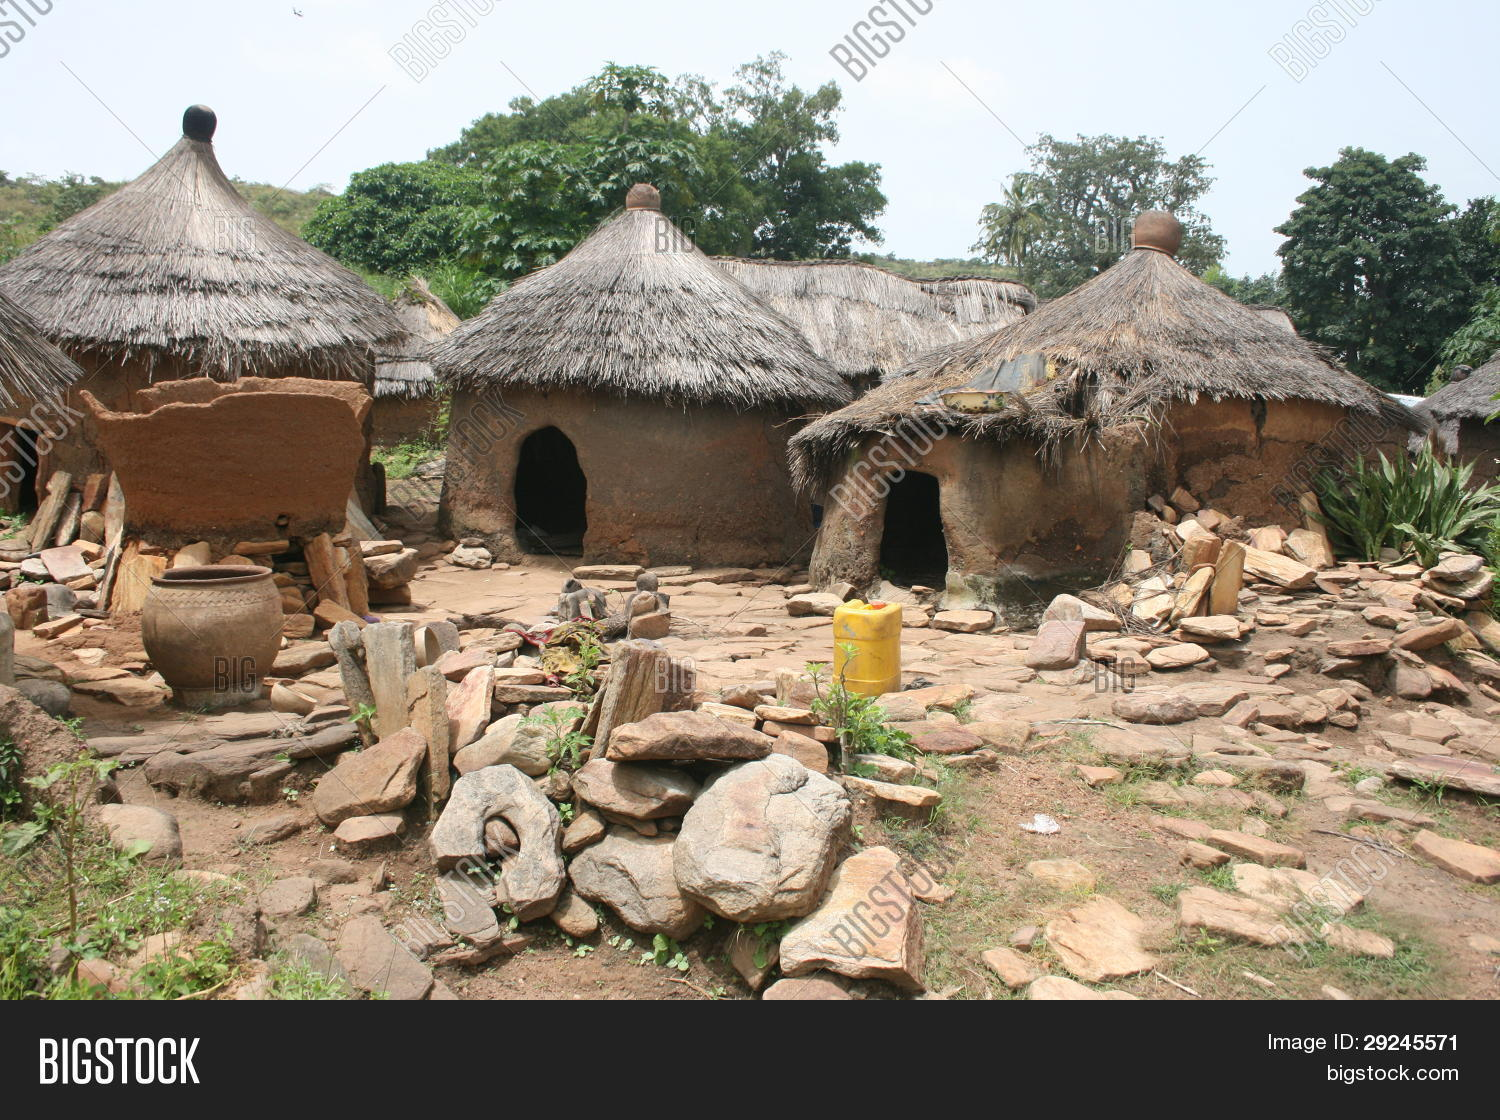 Tupical West African Village Of Mud And Dung Huts With Thatched